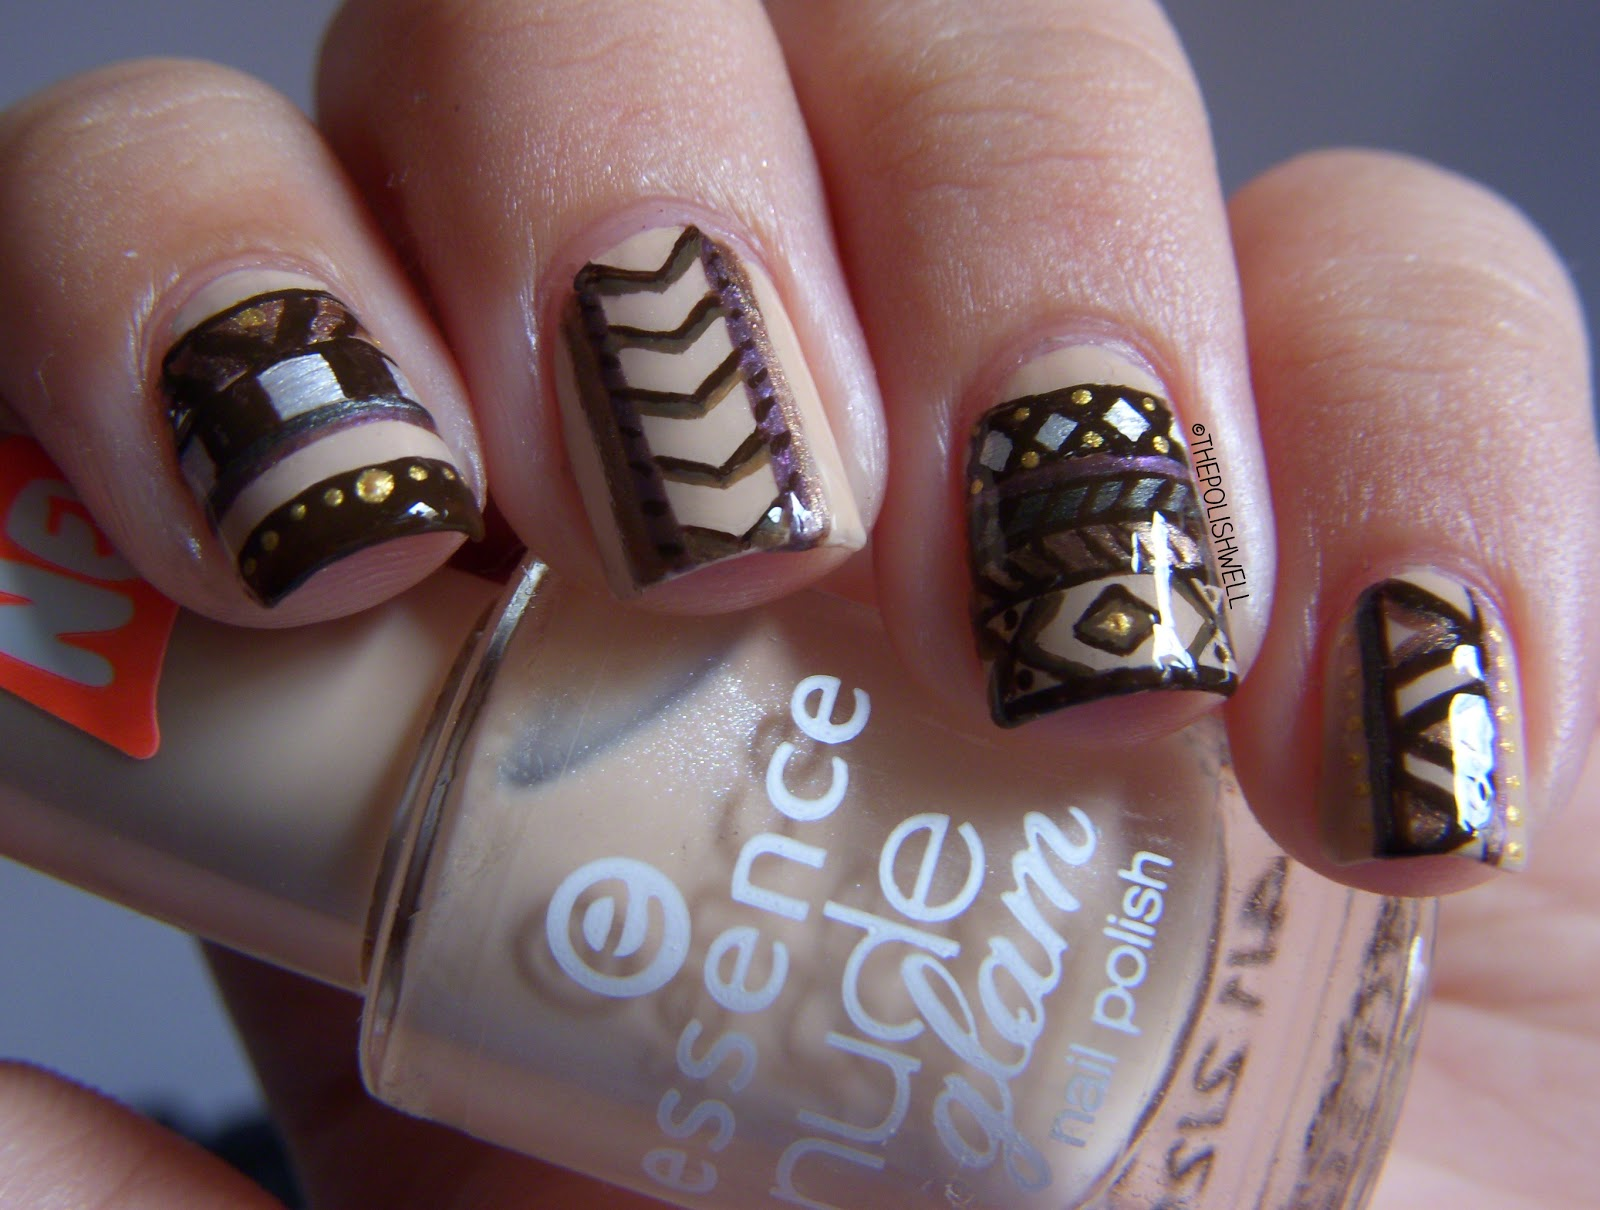 Nail ideas fall trends with essence nail art out to do some nail designs with some essence polishes since it is technically fall now ive sought inspiration from some of the fall trends that have prinsesfo Images